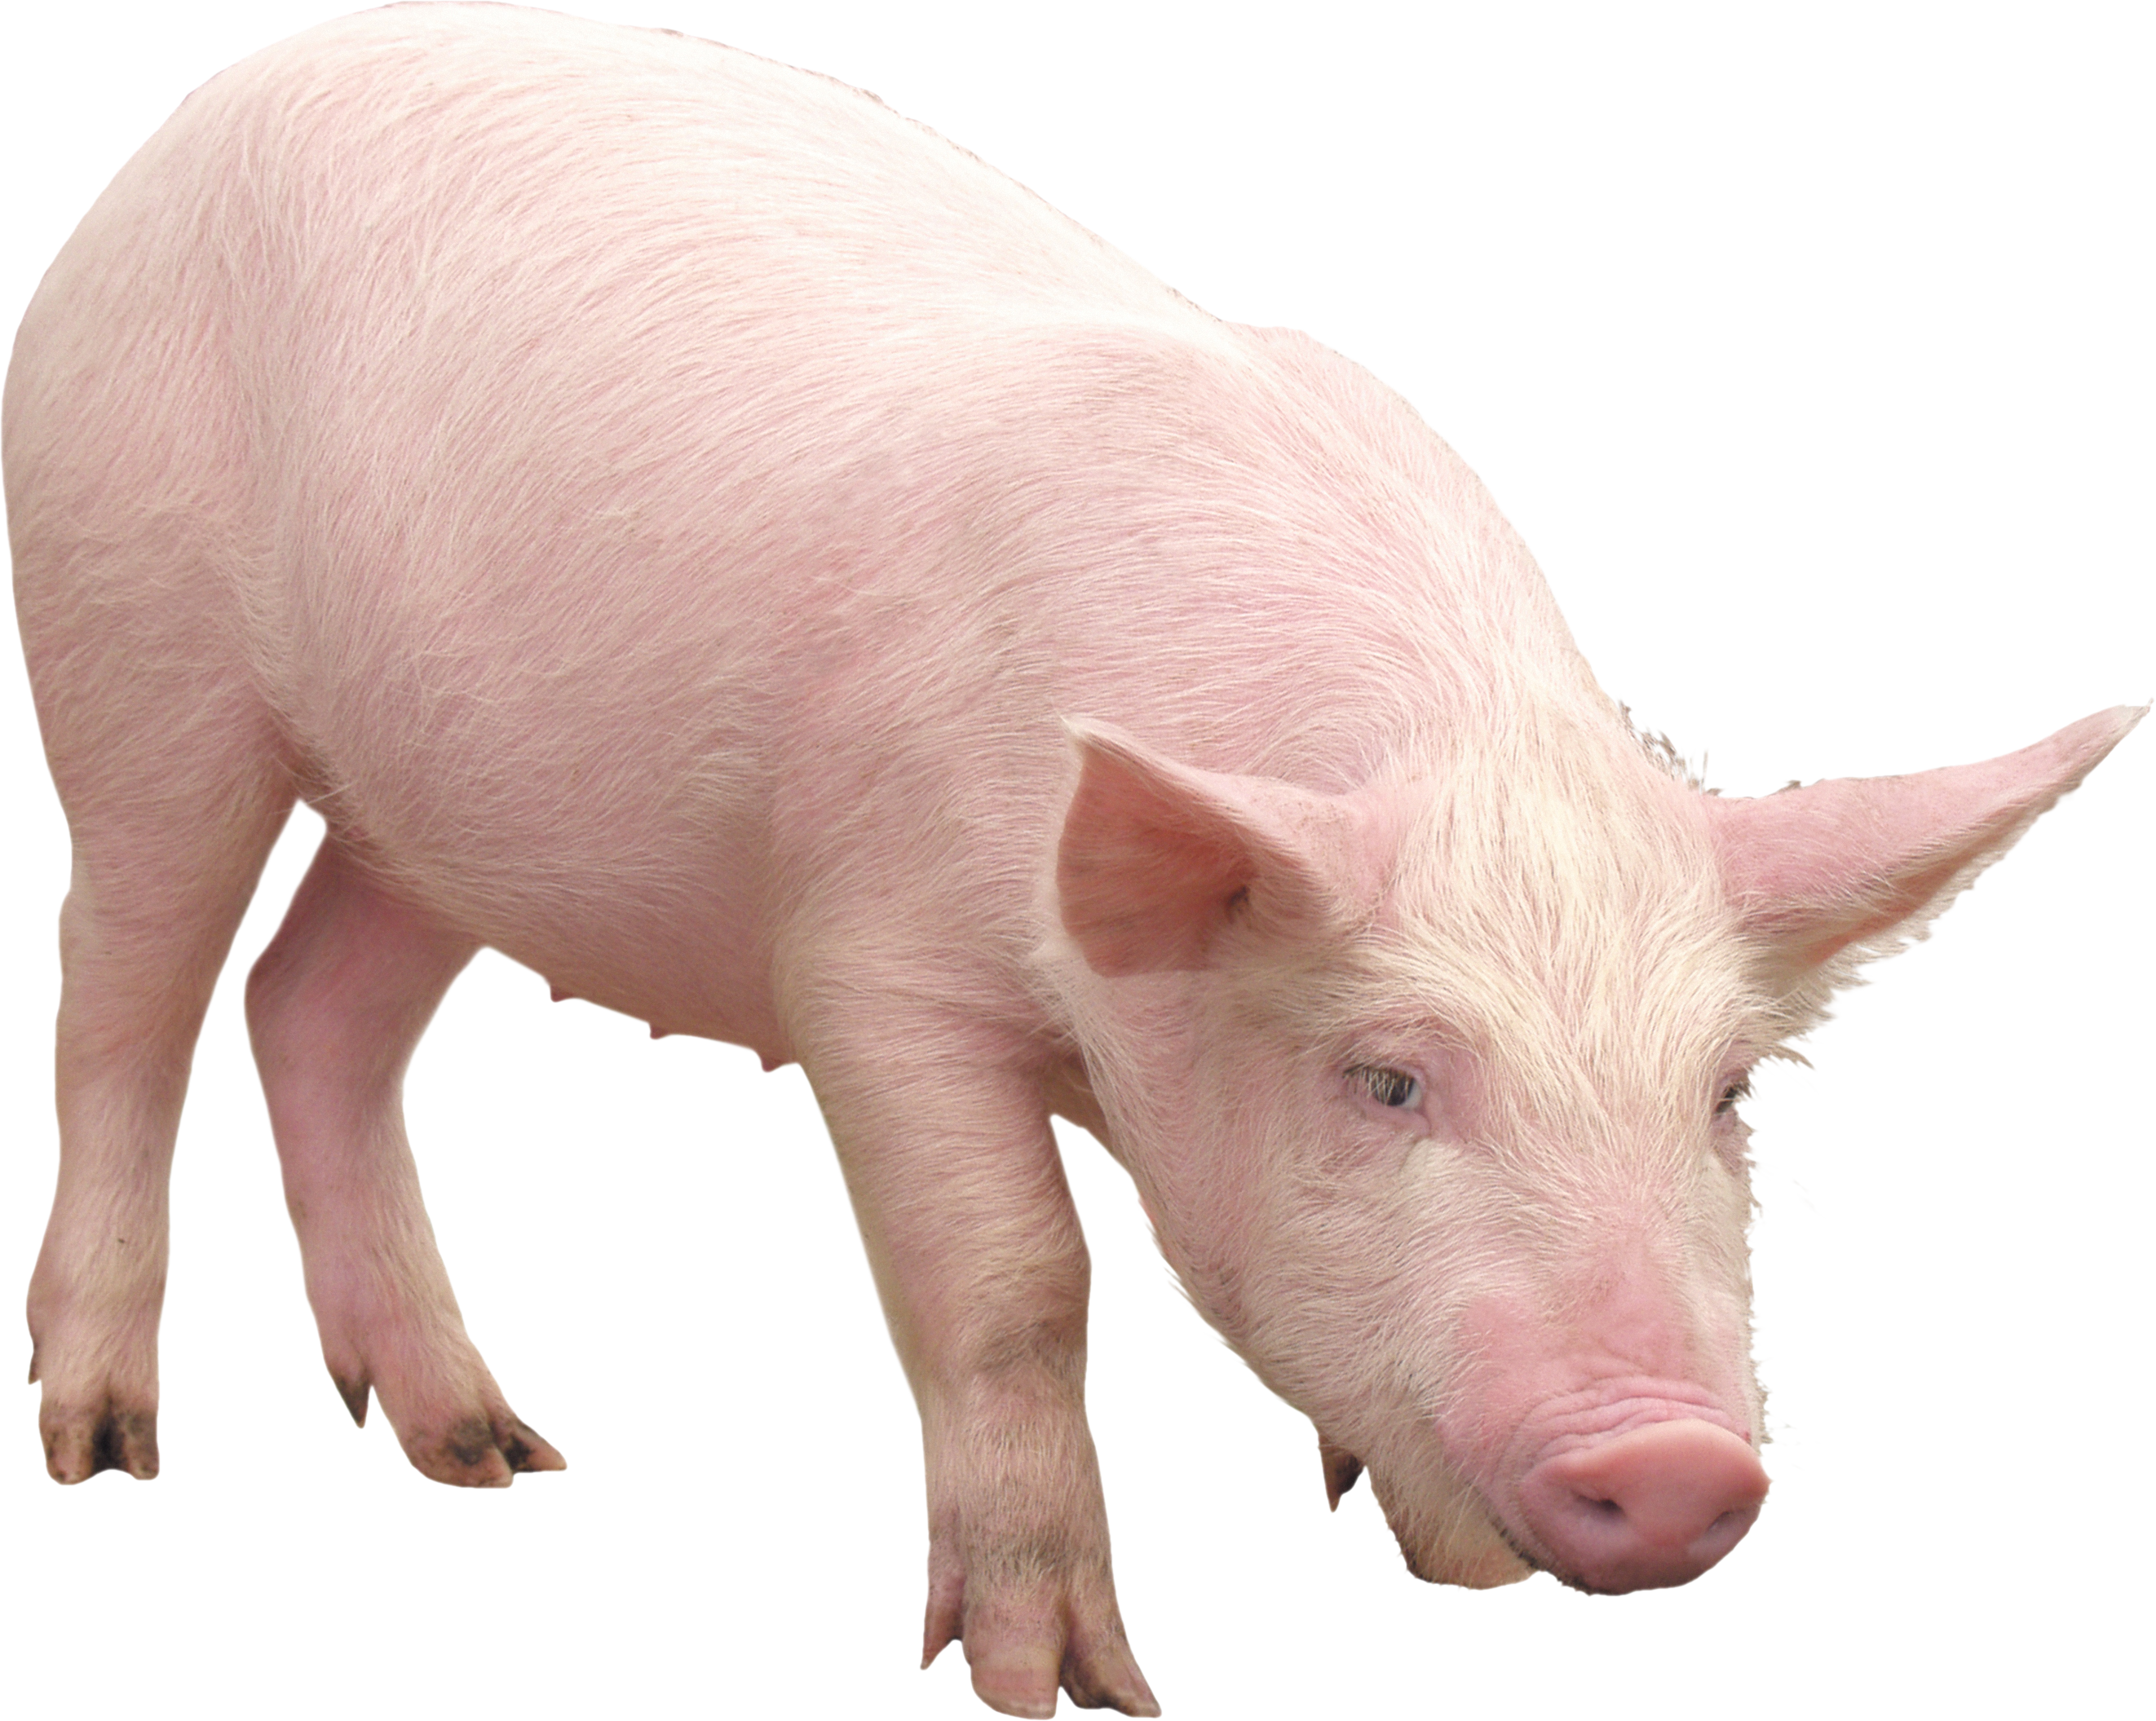 Pink Pig Png Image Pig Png Pig Cute Funny Animals